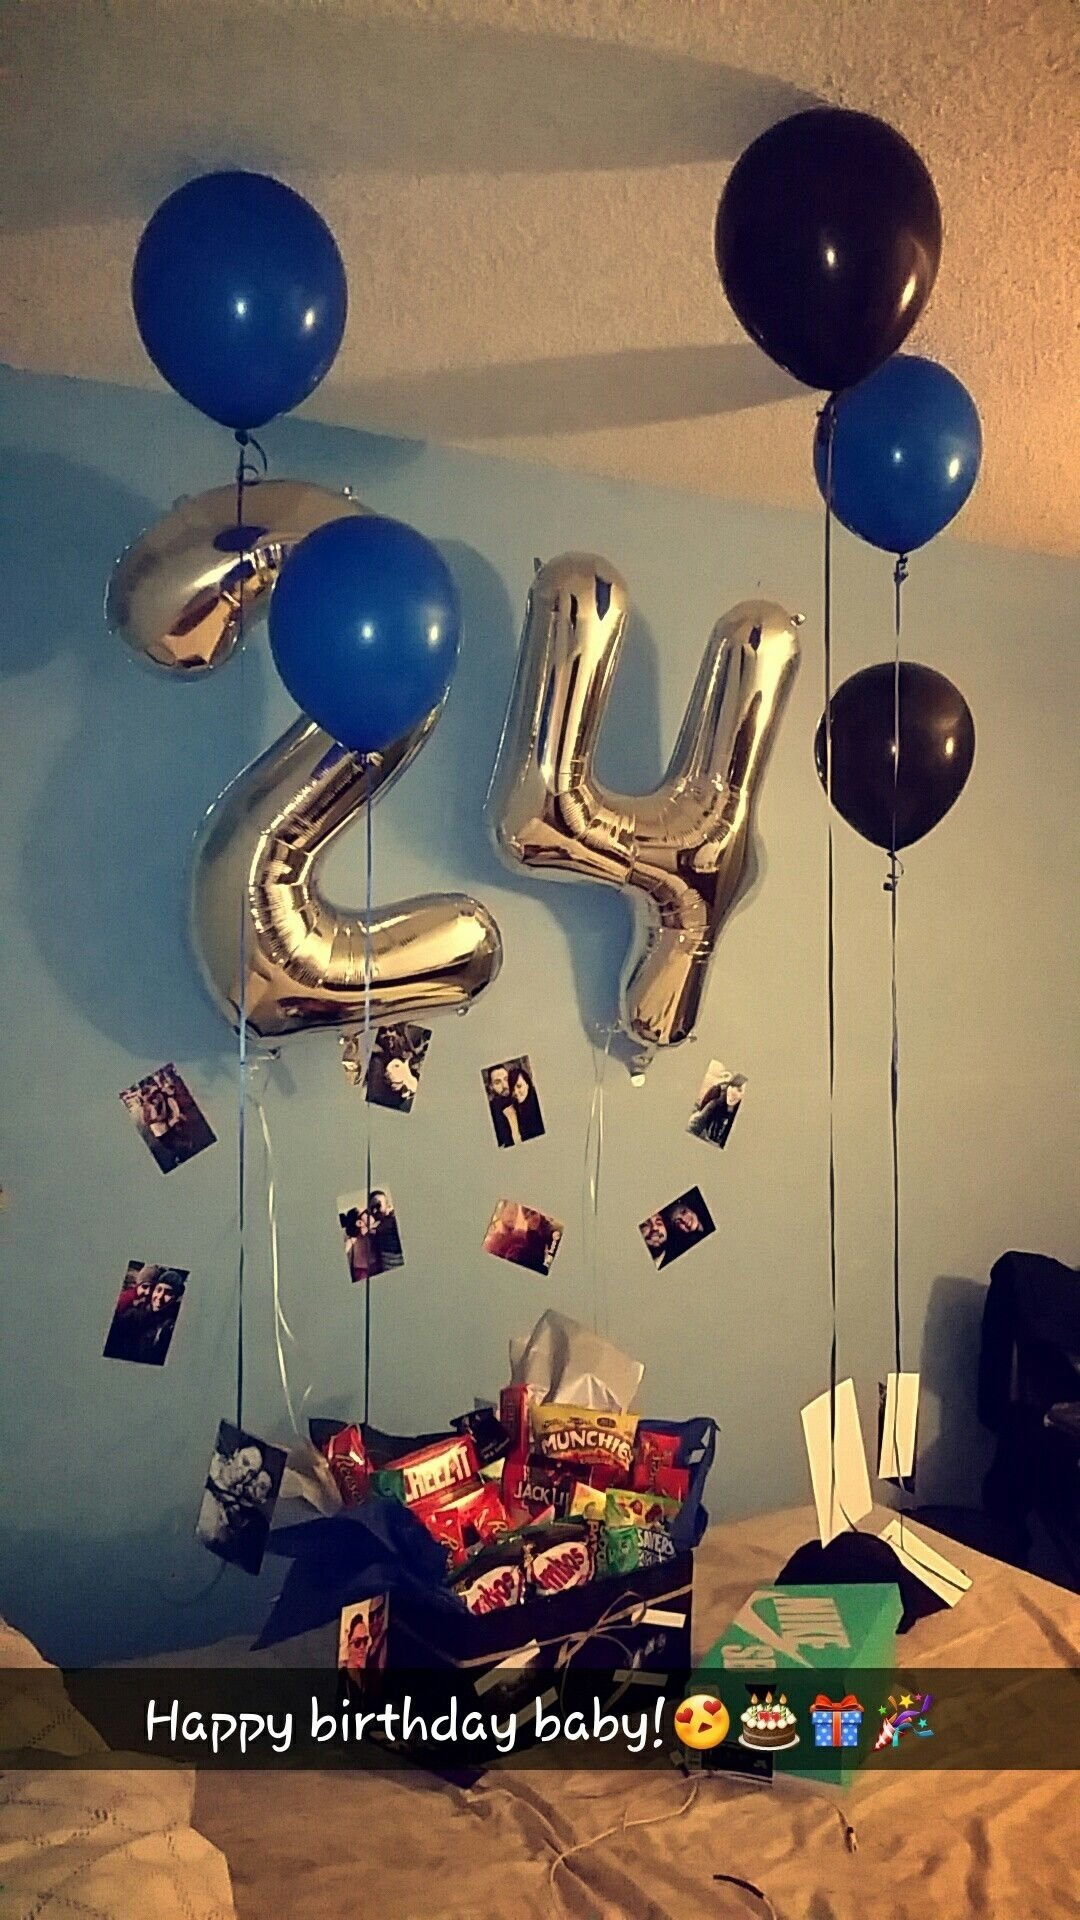 10 Most Popular Surprise Birthday Party Ideas For Him His Boyfriend Gift